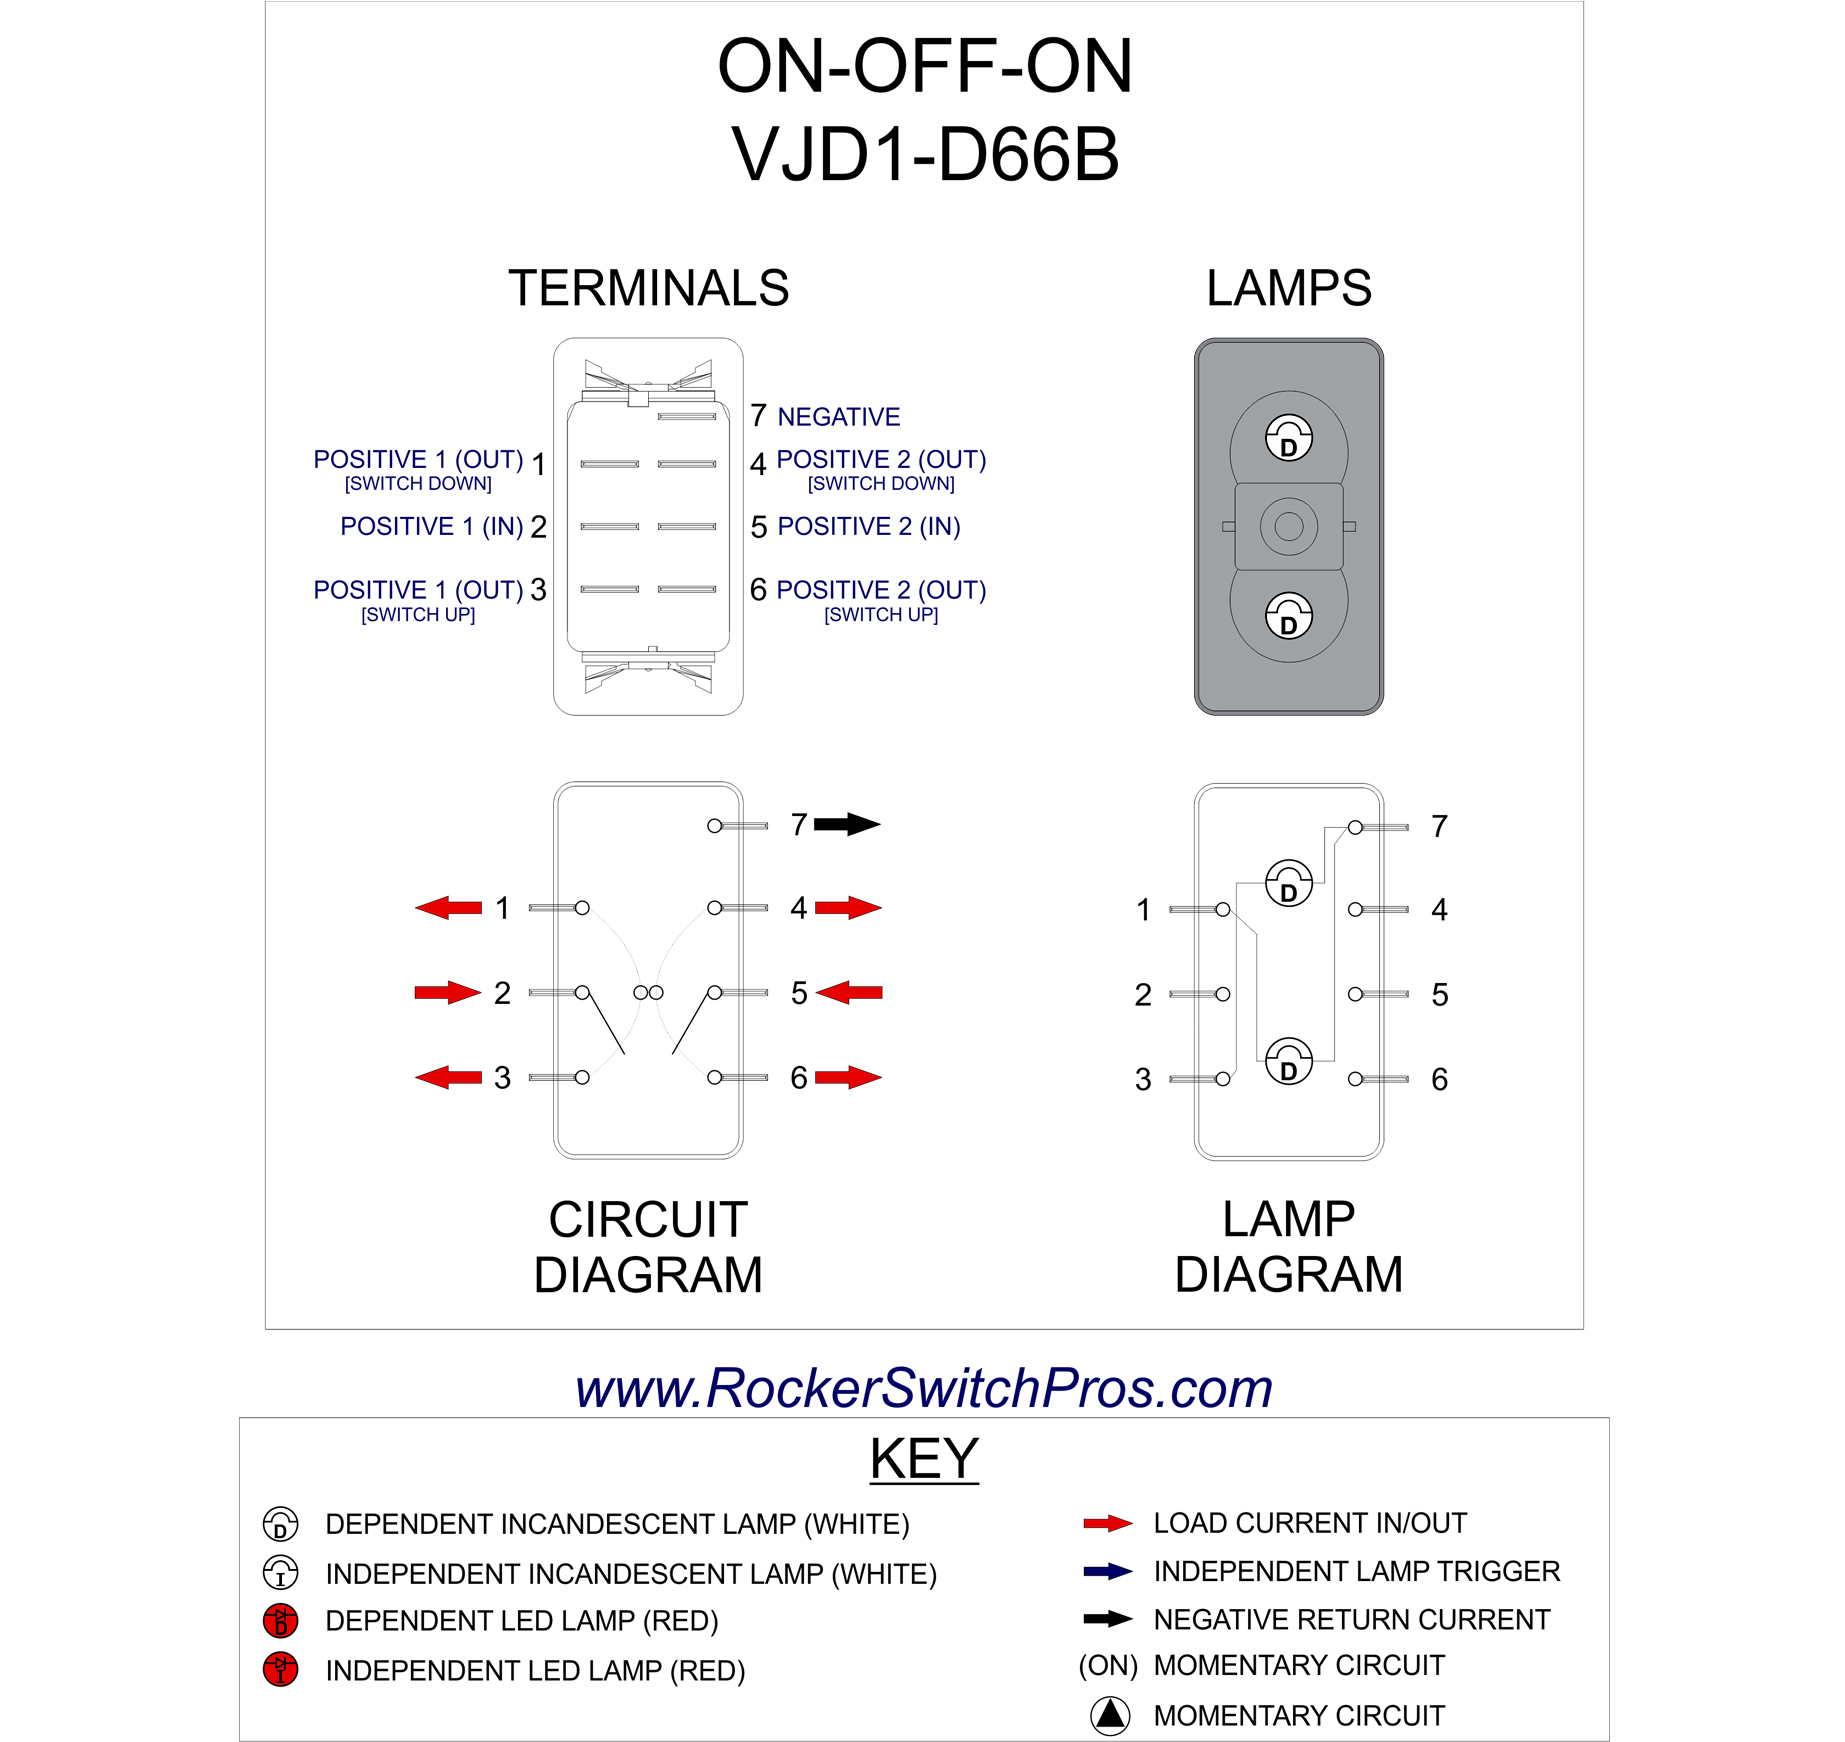 Magnificent Dpdt Toggle Switch Diagram Basic Electronics Wiring Diagram Wiring Cloud Uslyletkolfr09Org